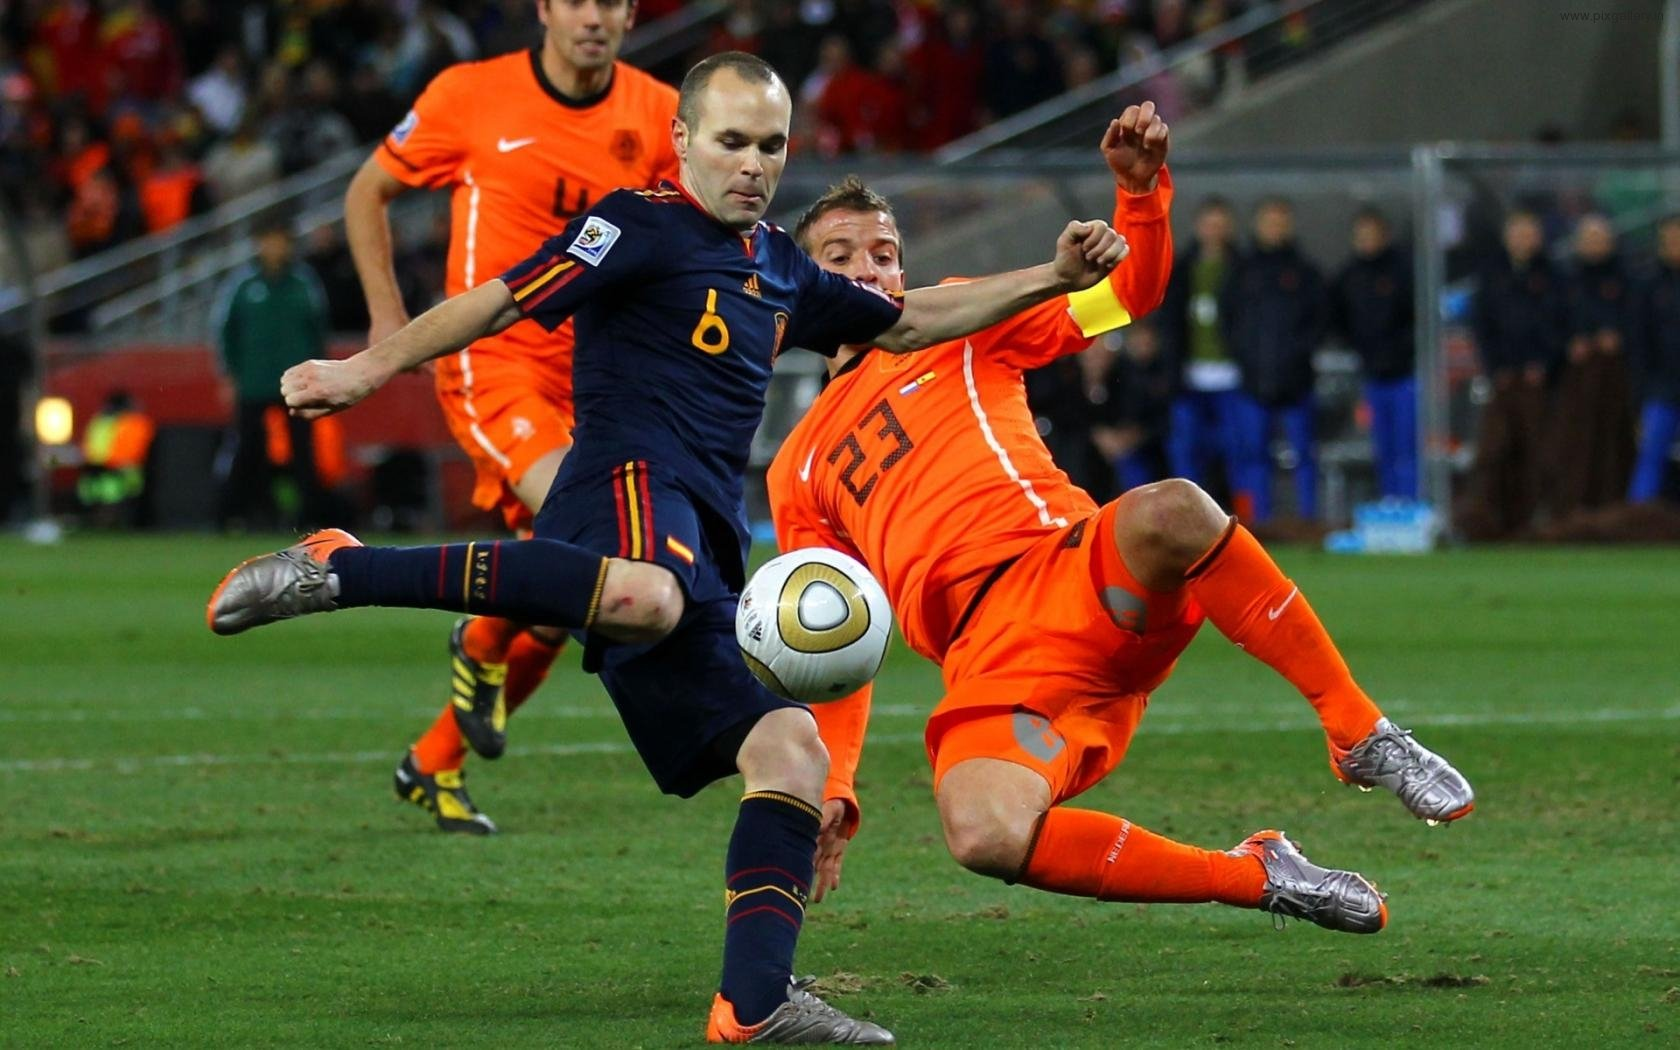 andres-iniesta-rafael-van-der-vaart-spain-holland-football-sports-world-cup-2010